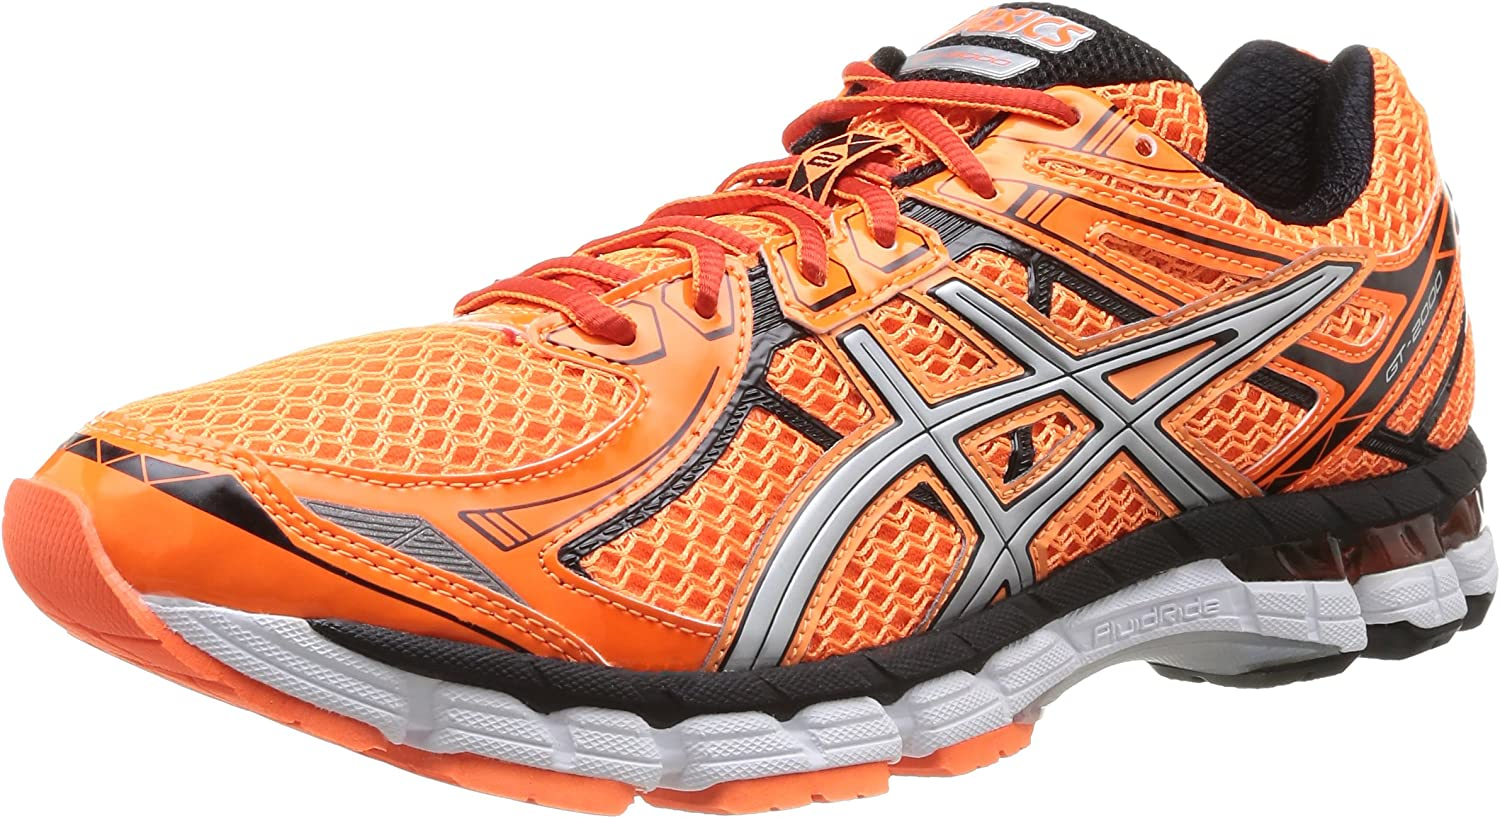 ASICS GT-2000 3 - Zapatillas de running para hombre, color naranja (flash orange/silver/black-3293), talla 40 EU (6 UK): Amazon.es: Zapatos y complementos